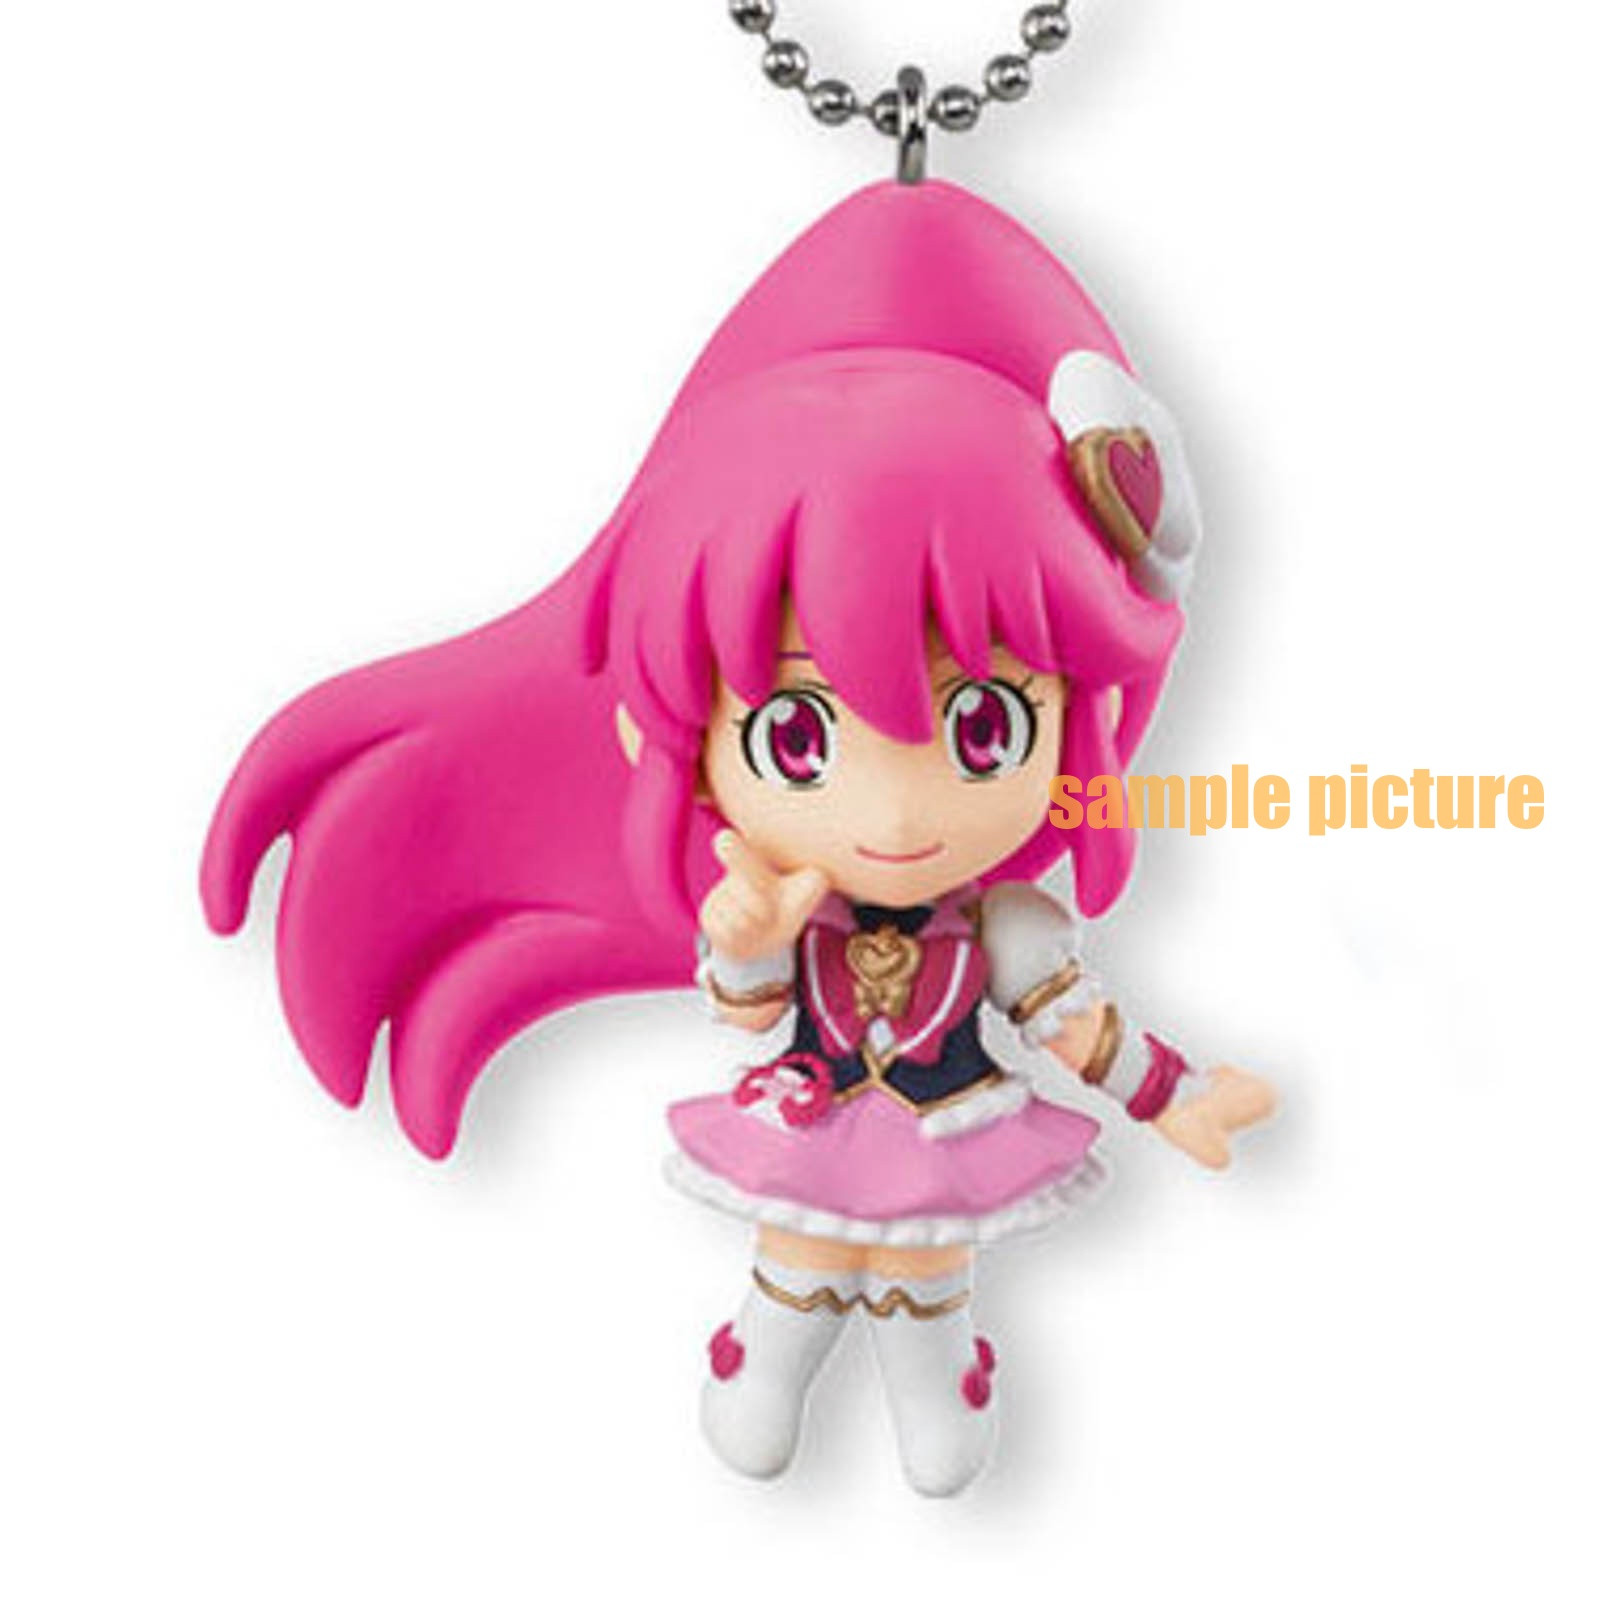 HappinessCharge PreCure! Cure Lovely Mascot Figure Ball Keychain JAPAN ANIME